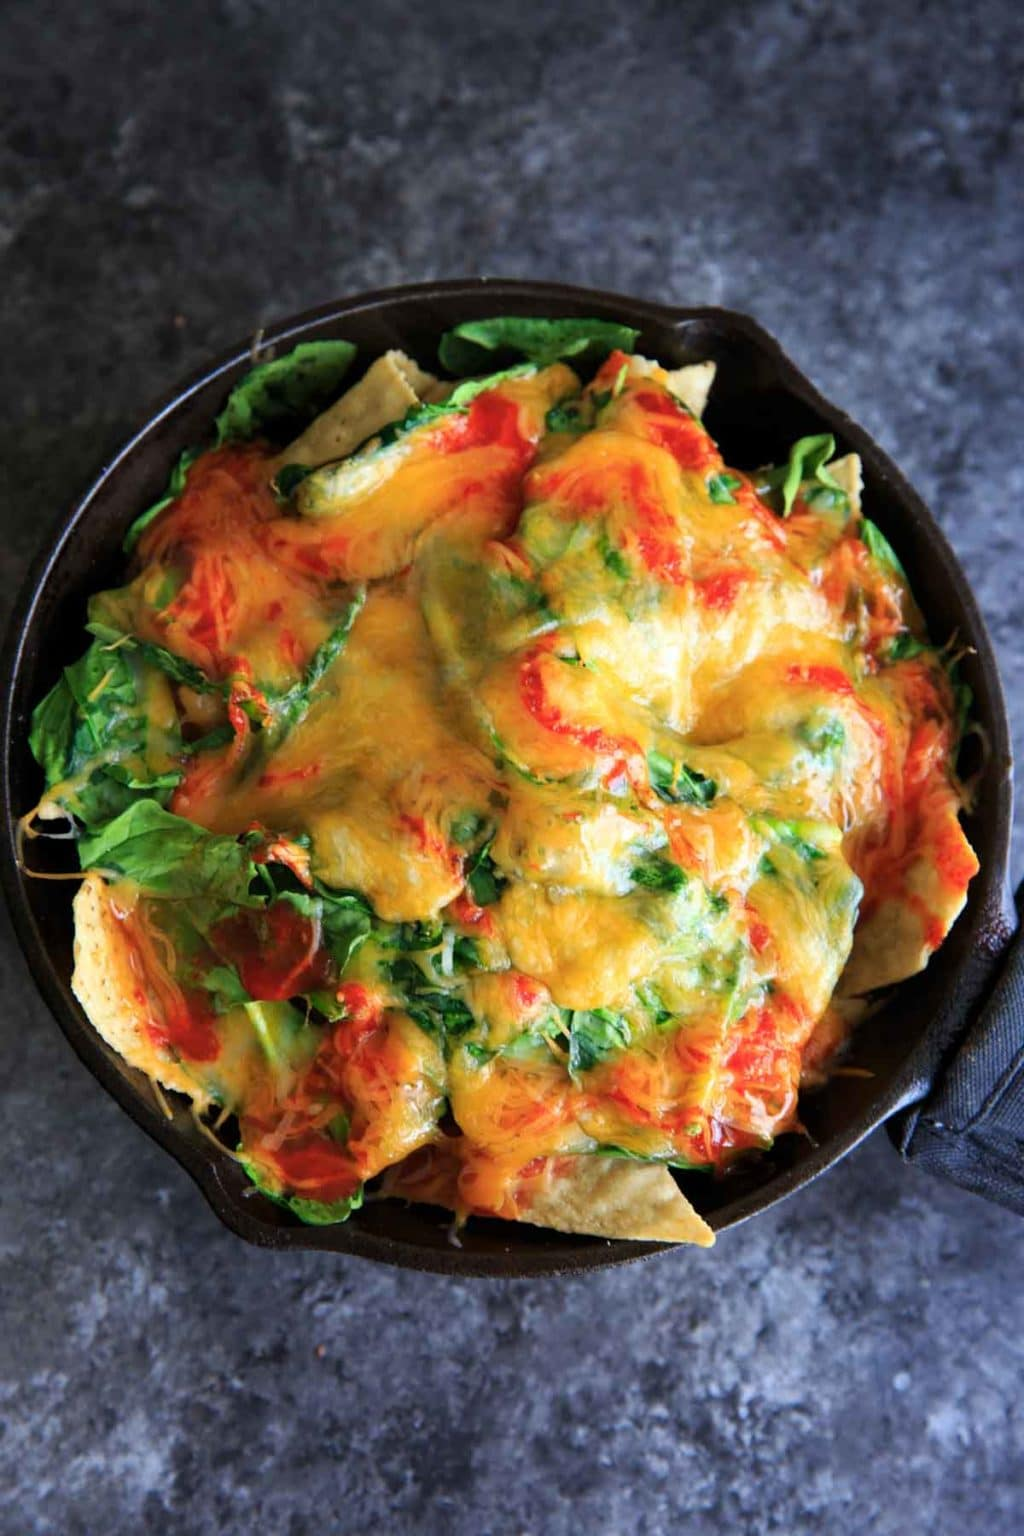 Oven-baked spinach nachos in a cast iron skillet. A great party snack, meal for 2 (or 1!) that has a little extra nutrition with greens.